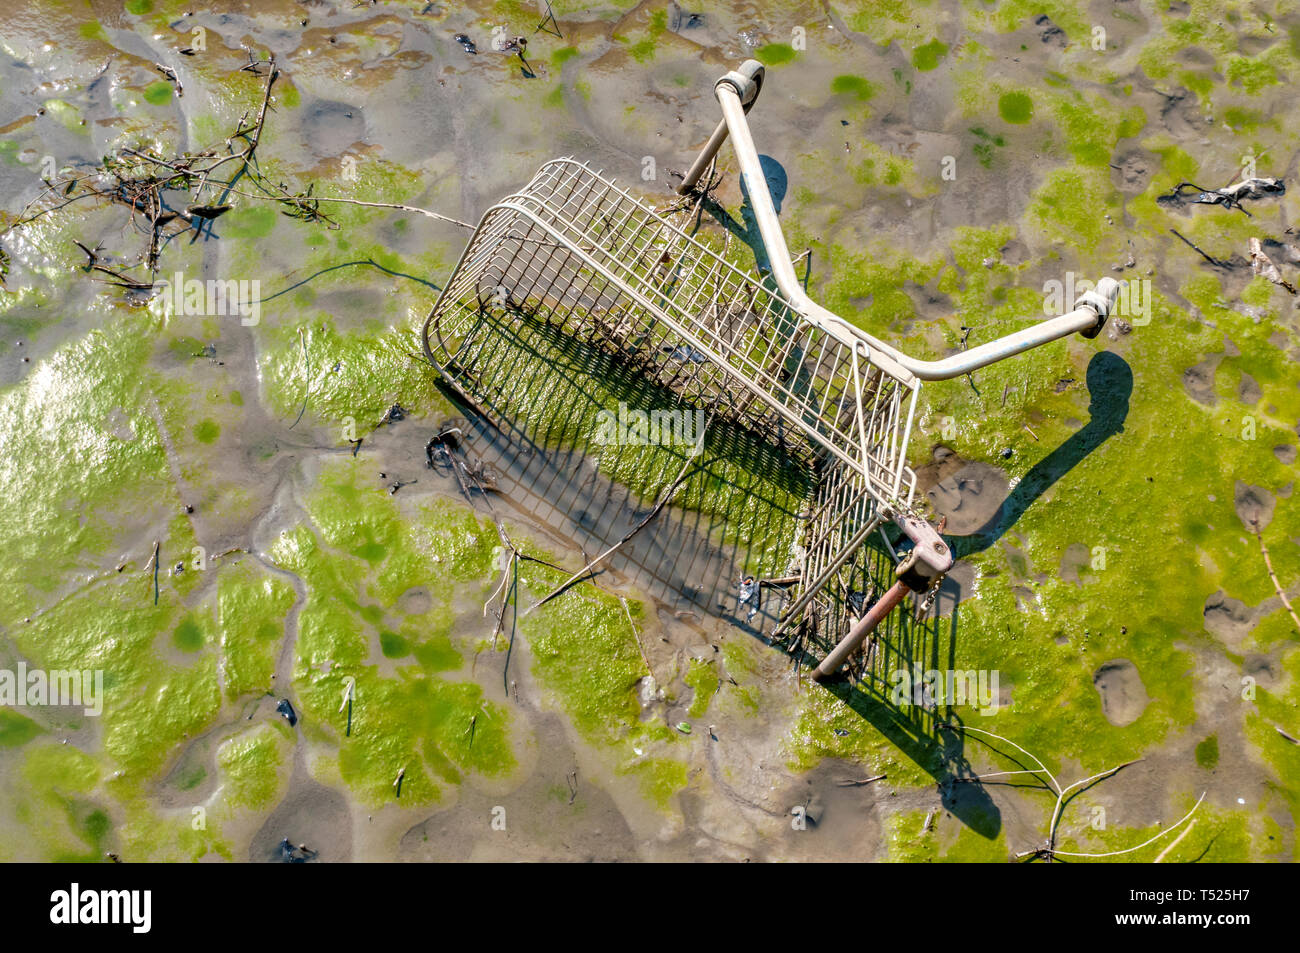 A supermarket trolley sunk in mud in the River Thames at Hammersmith. - Stock Image